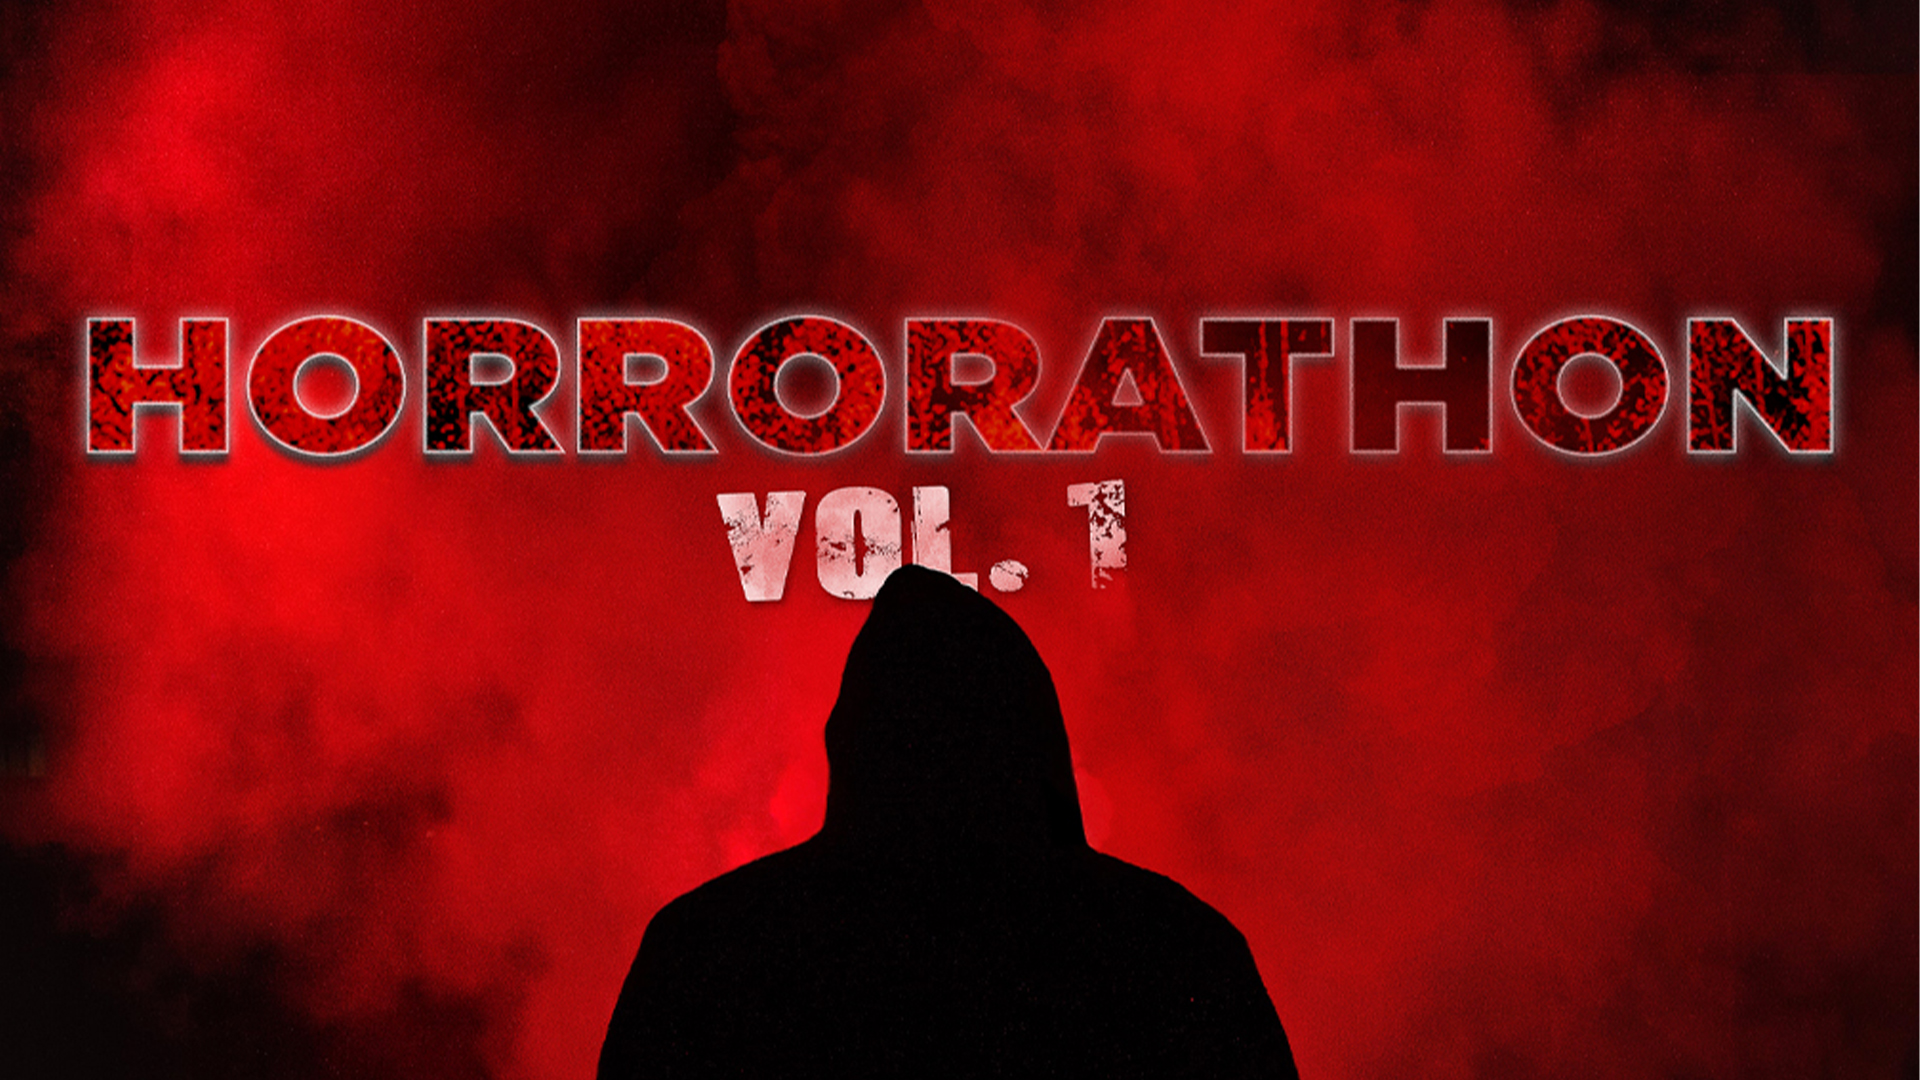 Horrorathon Vol. 1